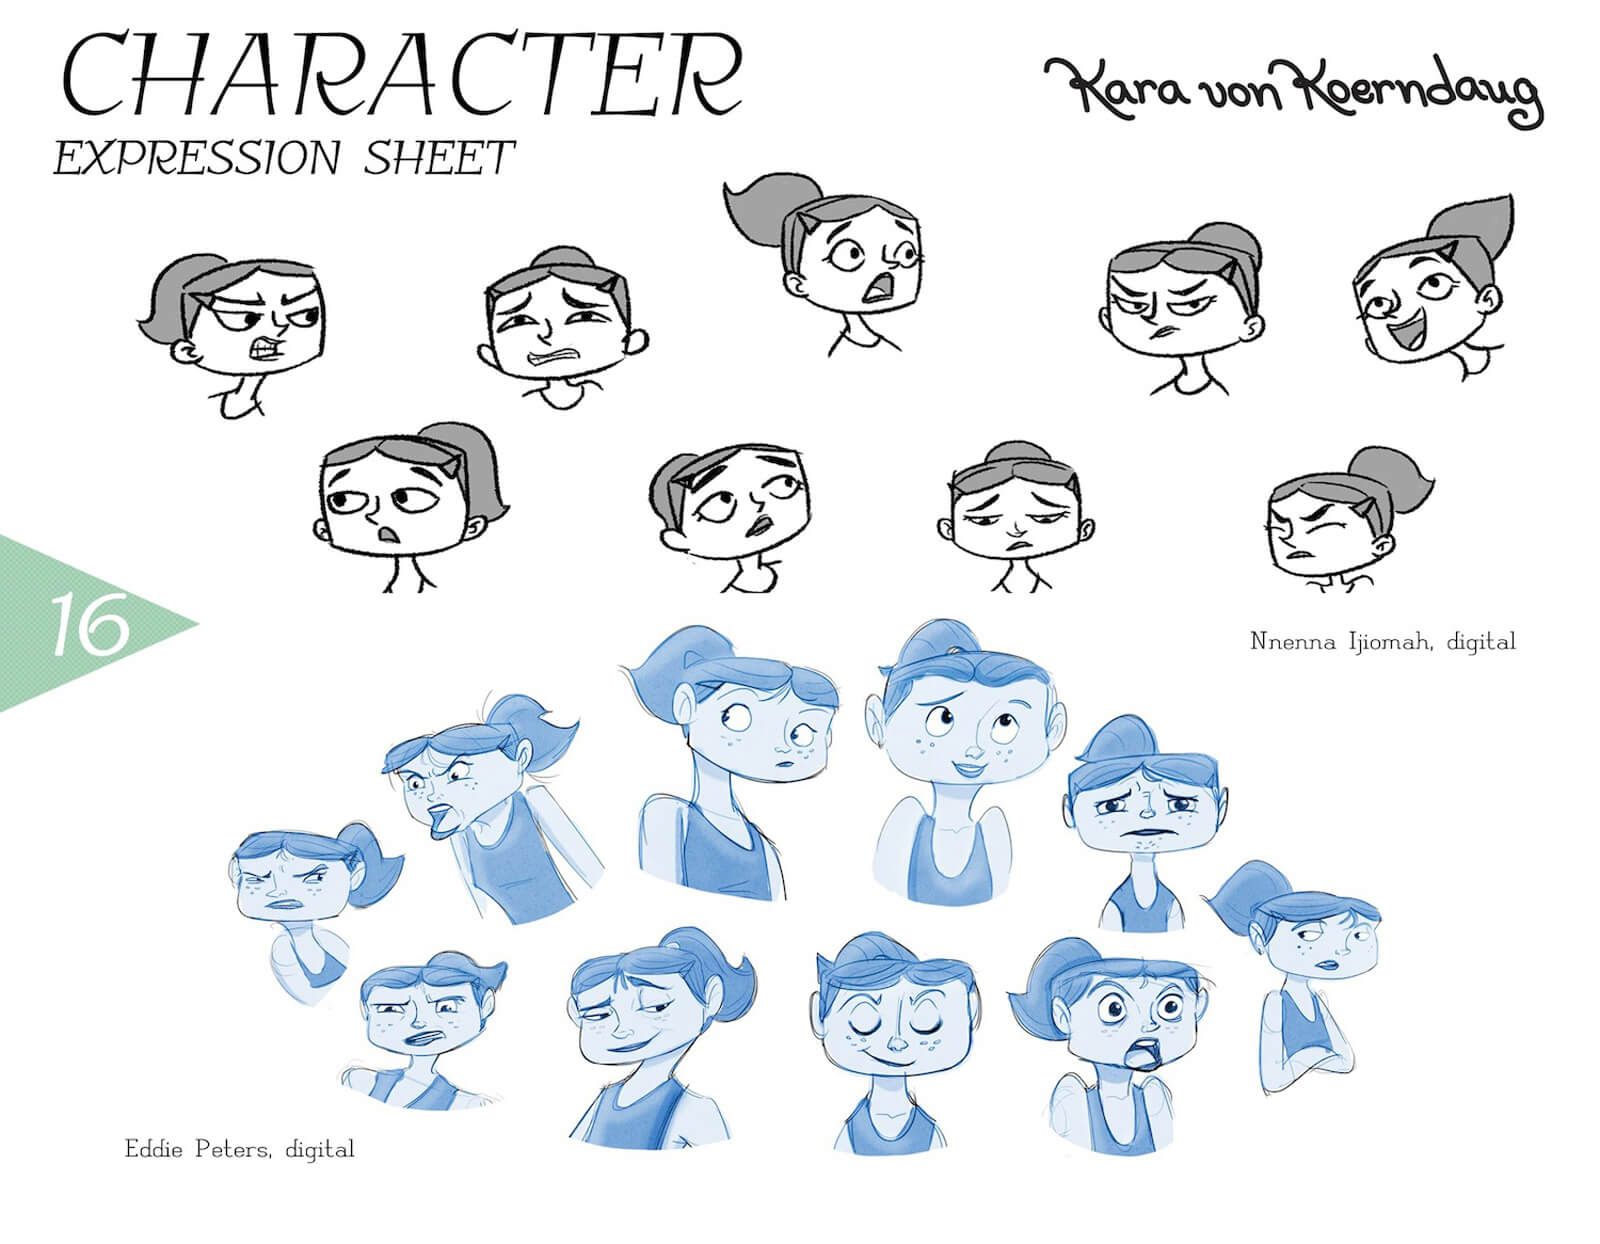 Expression sheet for Kara von Koerndaug, depicting black-and-white sketches of anger, sadness, smugness, and others